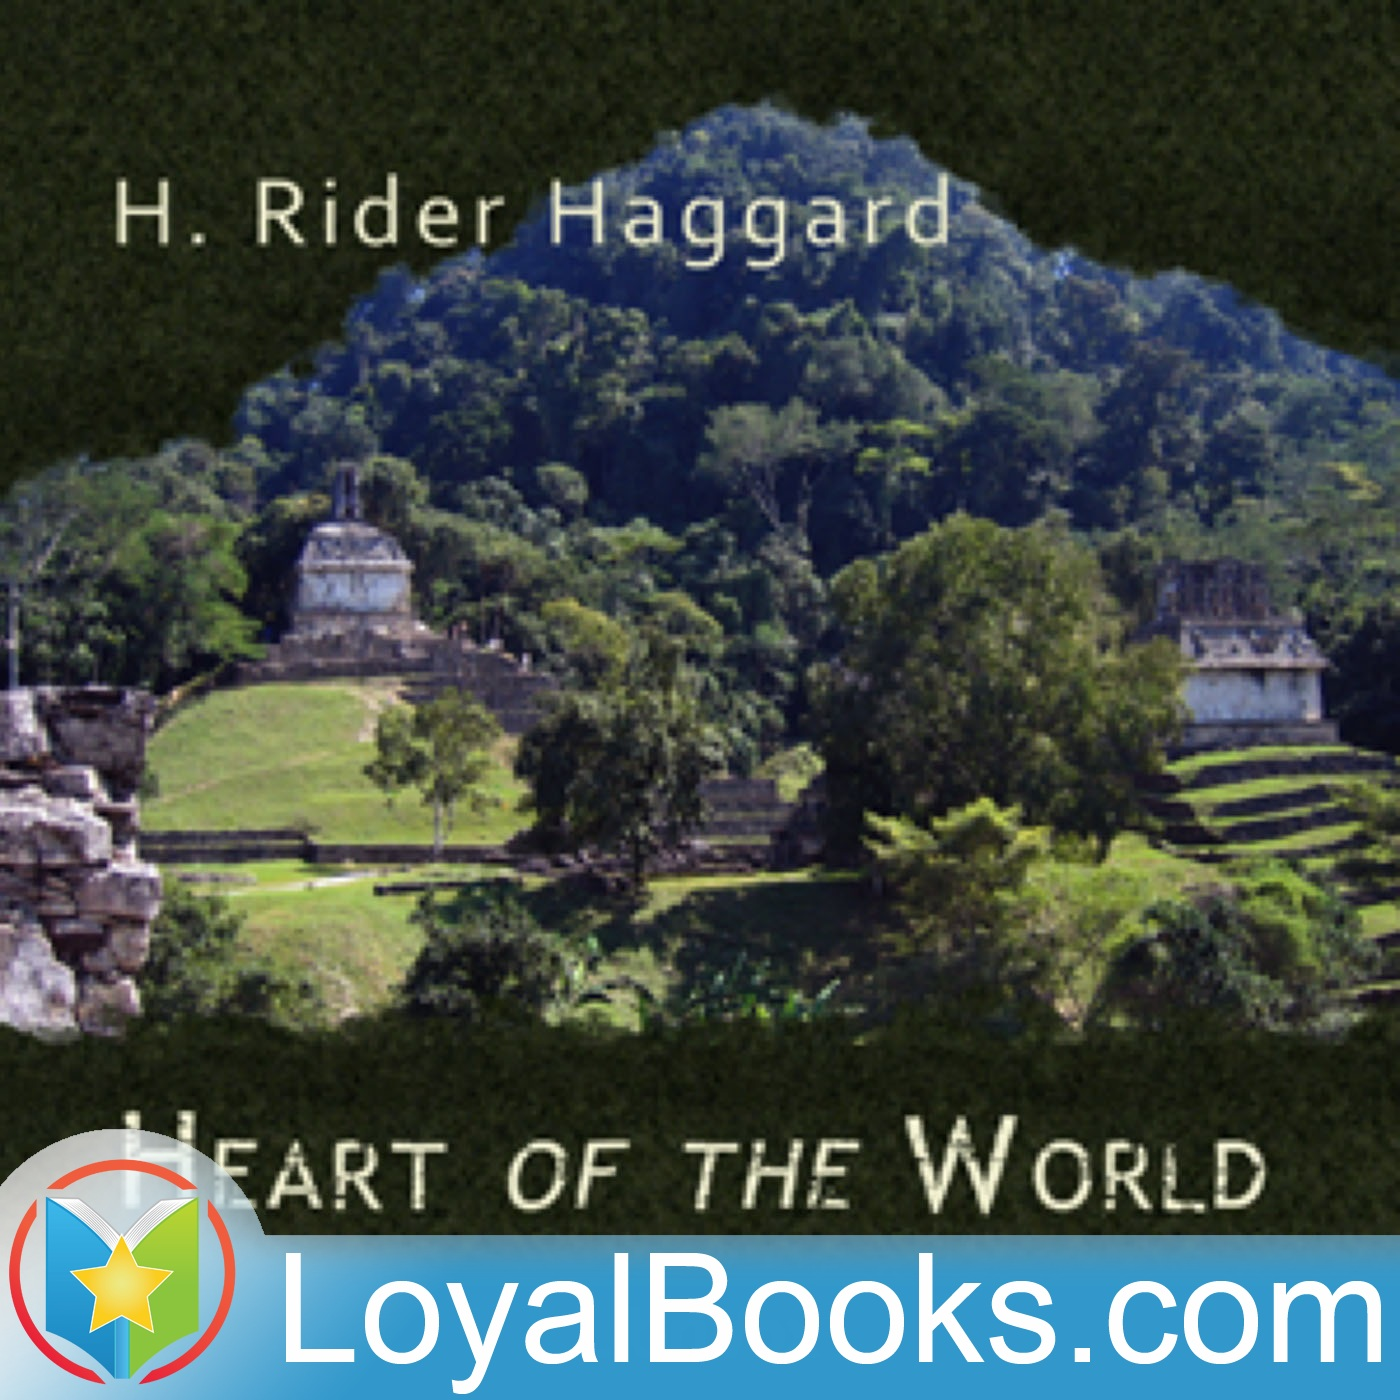 <![CDATA[Heart of the World by H. Rider Haggard]]>